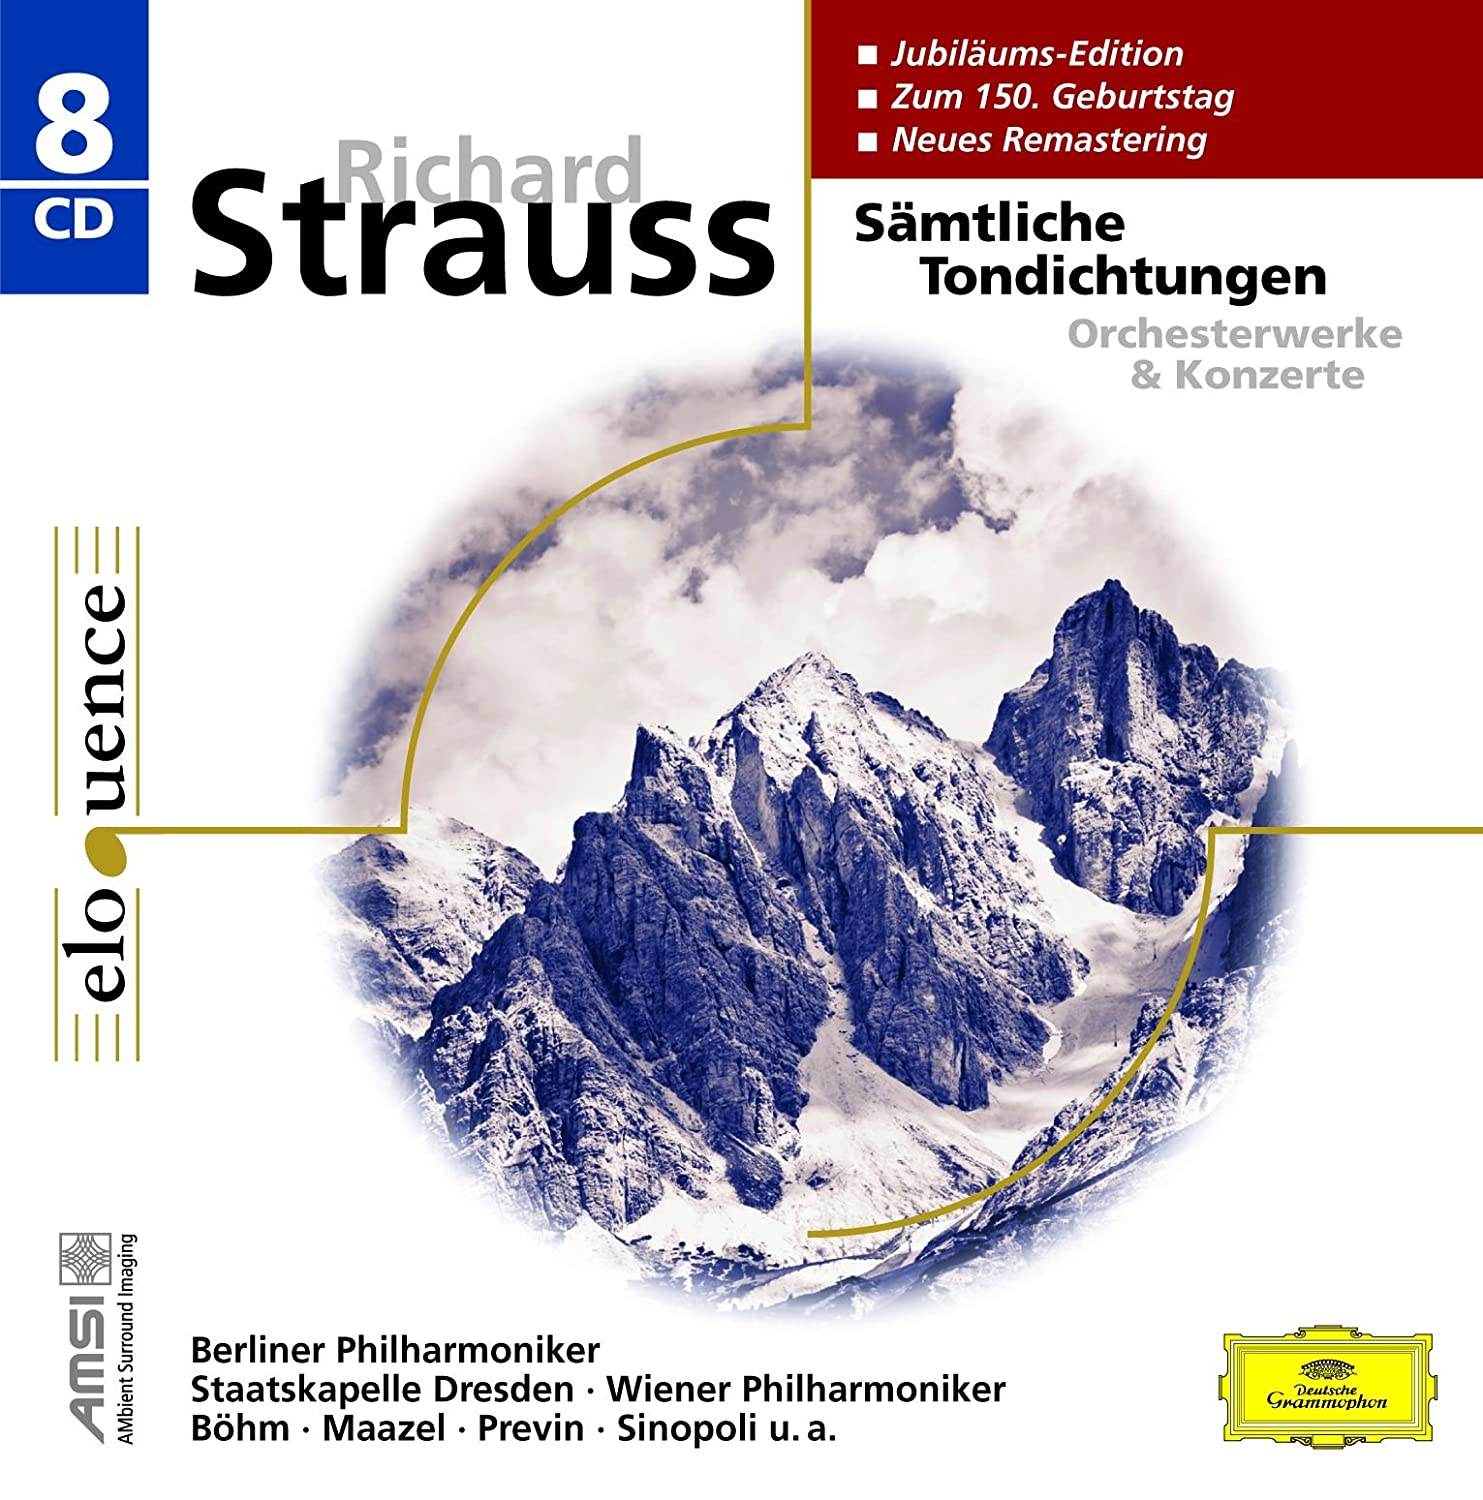 Strauss - Oeuvres symphoniques - Page 5 81hi5gcYM9L._SL1500_